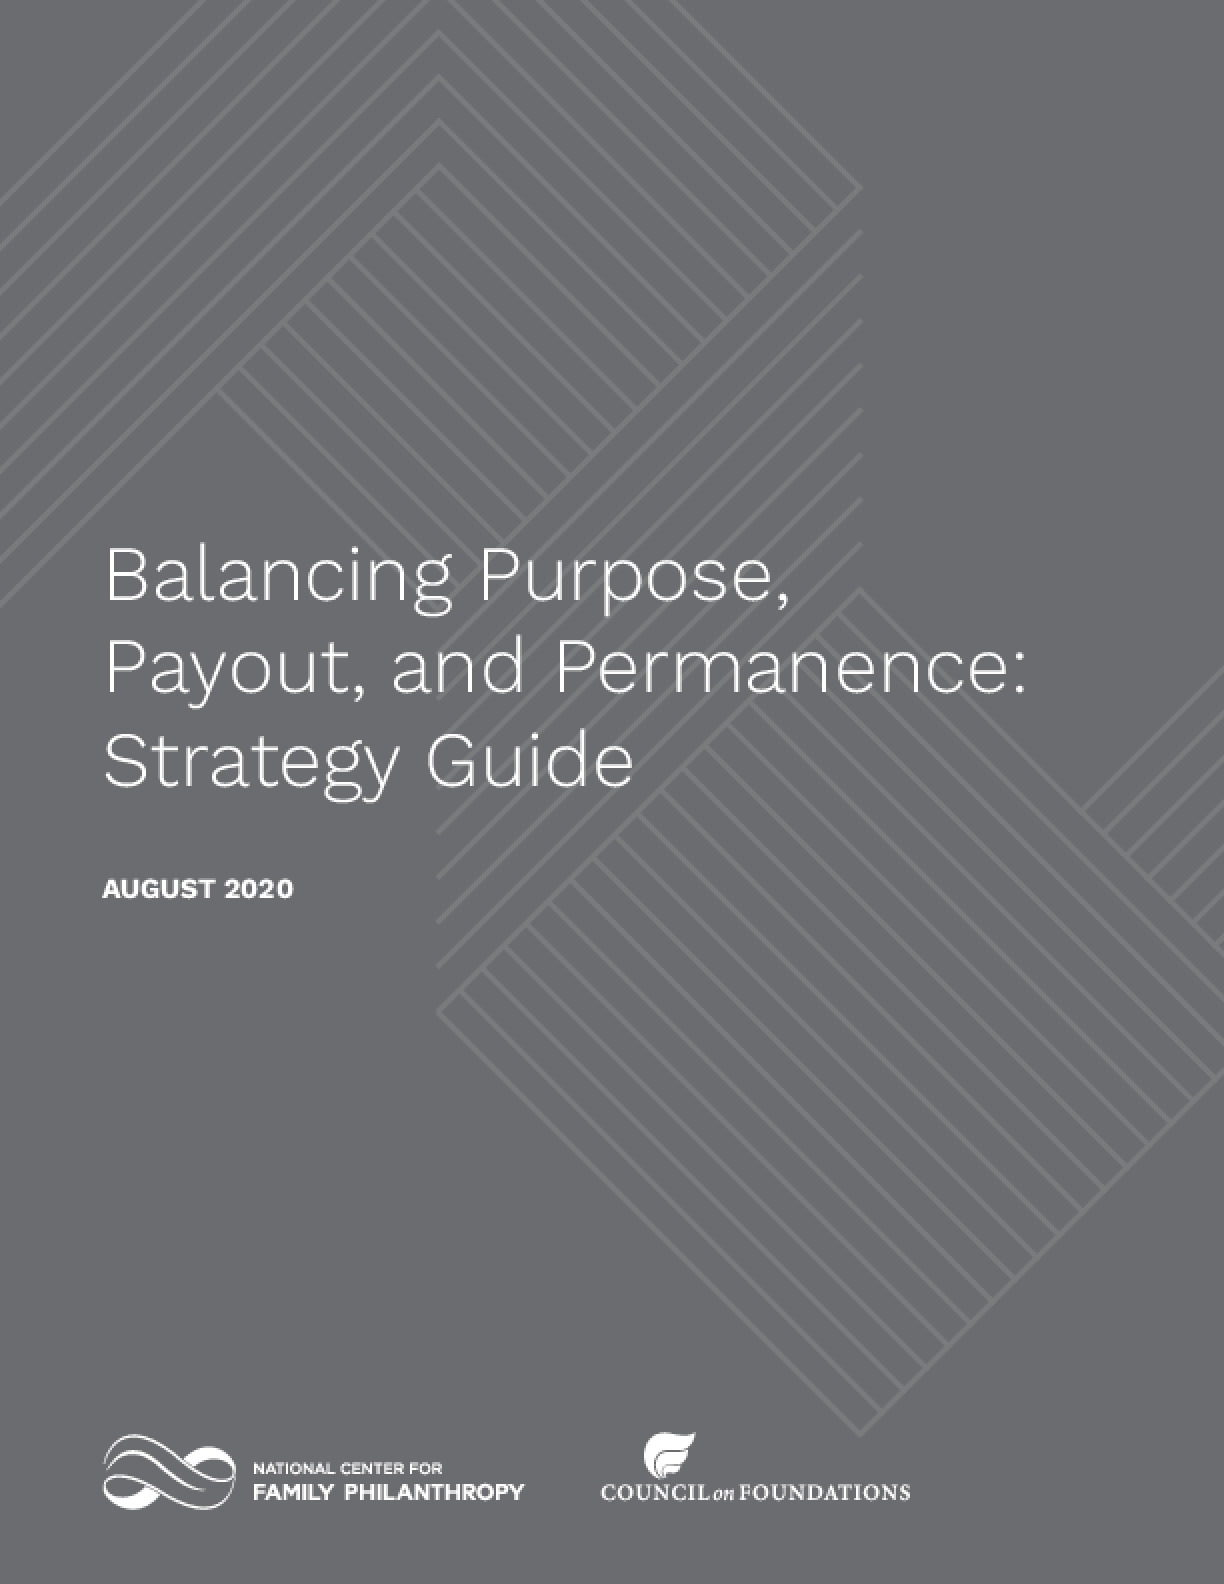 Balancing Purpose, Payout, and Permanence: Strategy Guide